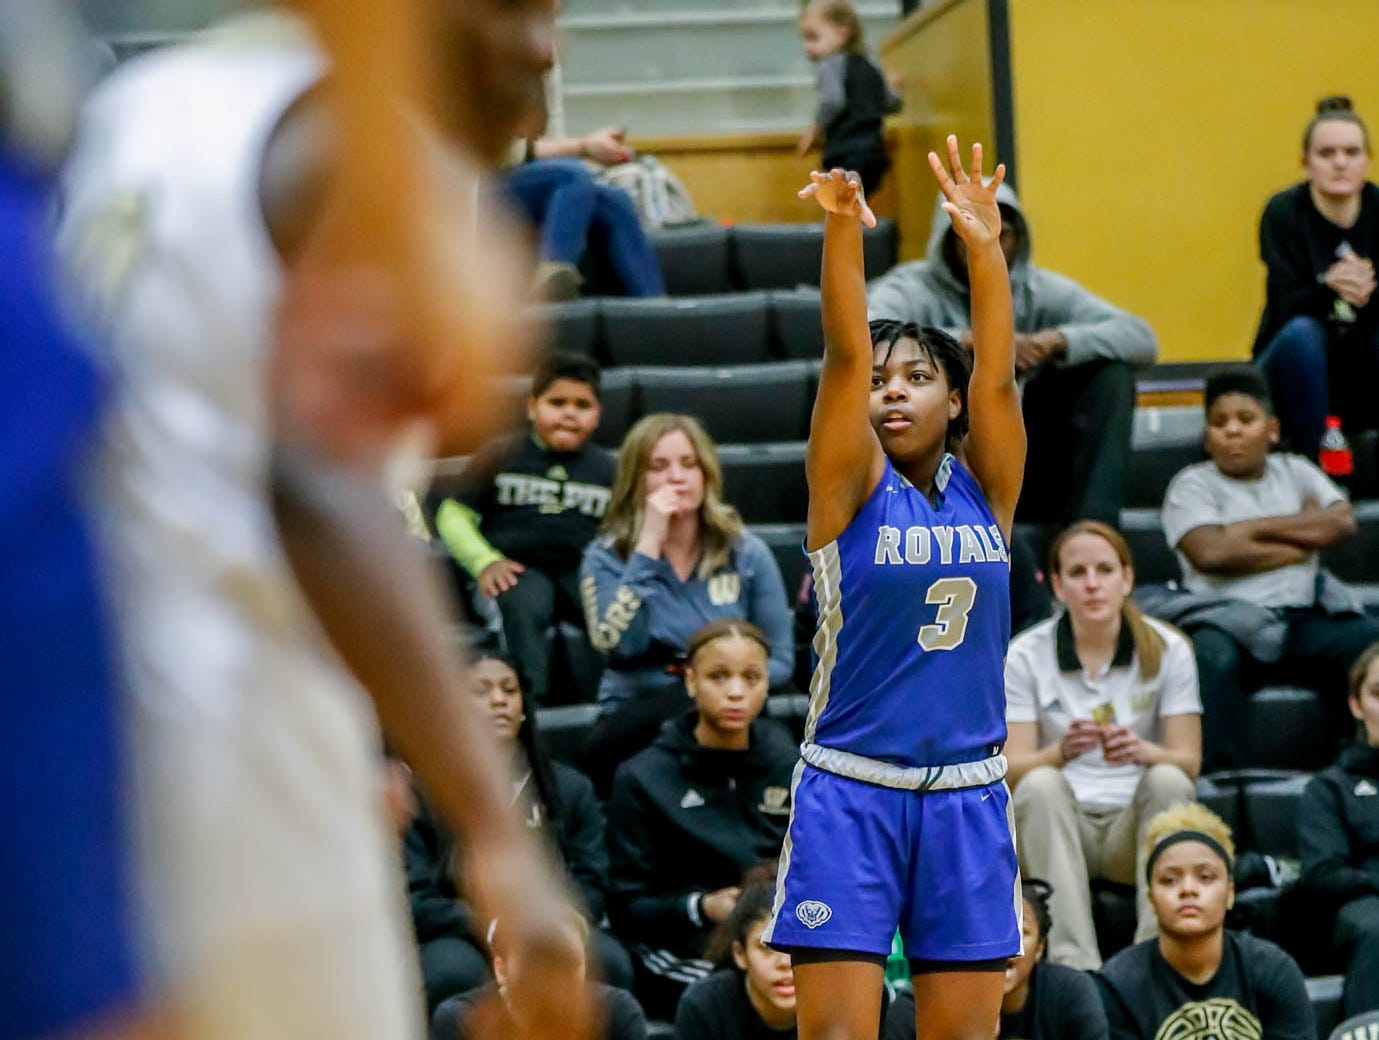 Hamilton South Eastern's Malea Jackson (3), shoots for a three pointer during a game between Hamilton Southeastern High School and Warren Central High School, held at Warren on Thursday, Jan. 3, 2019.